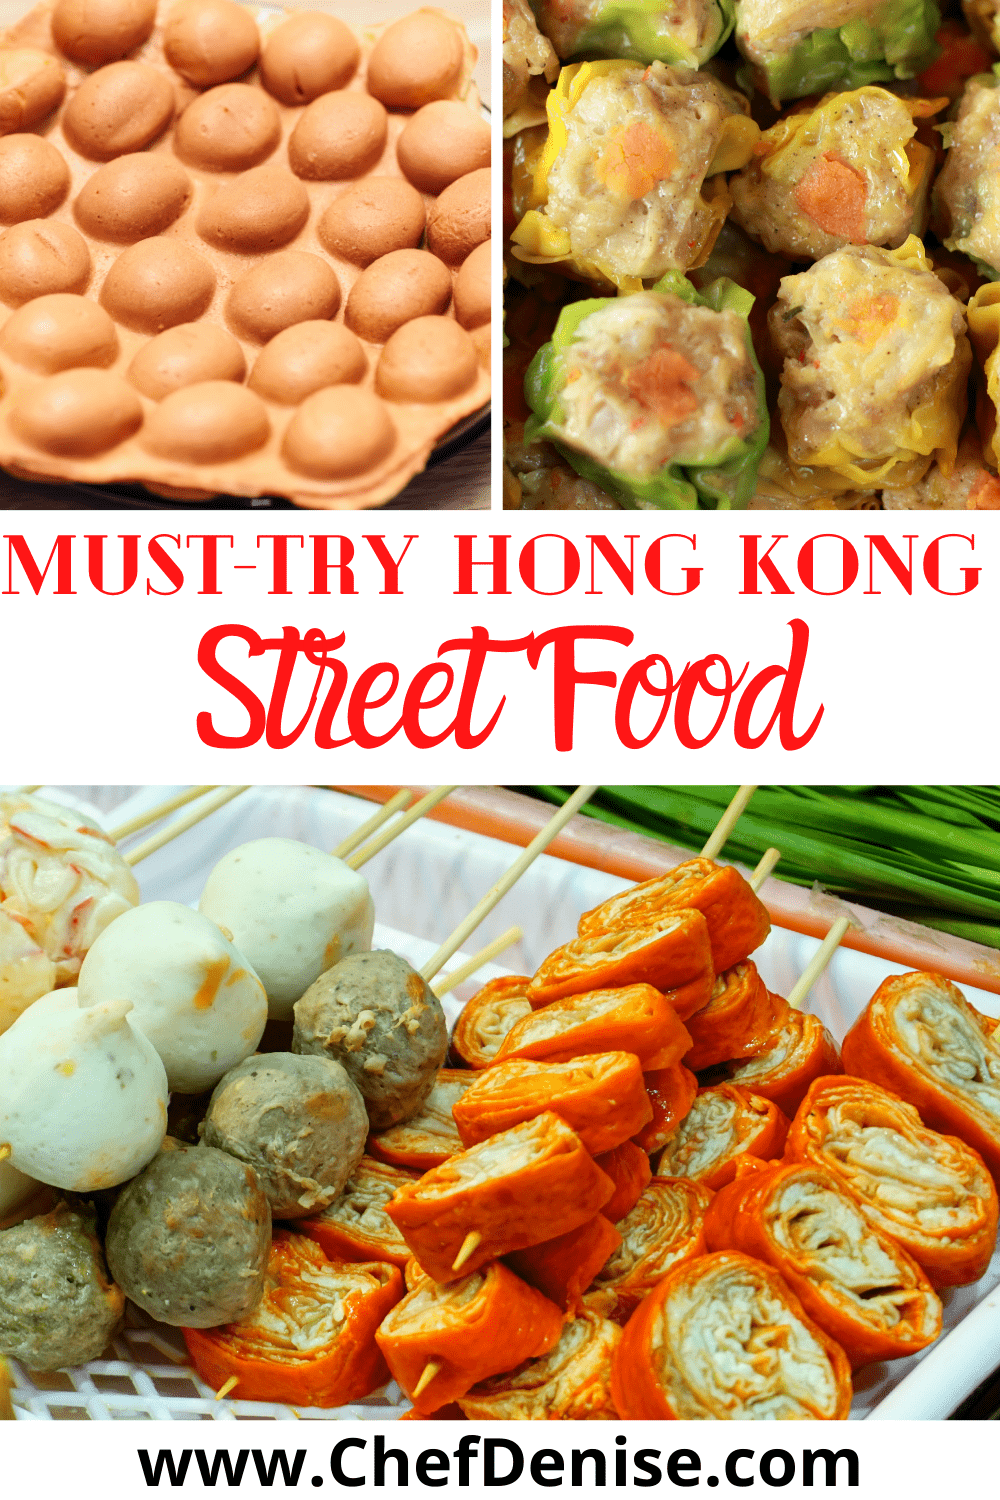 Pin for the must-try street food in Hong Kong.